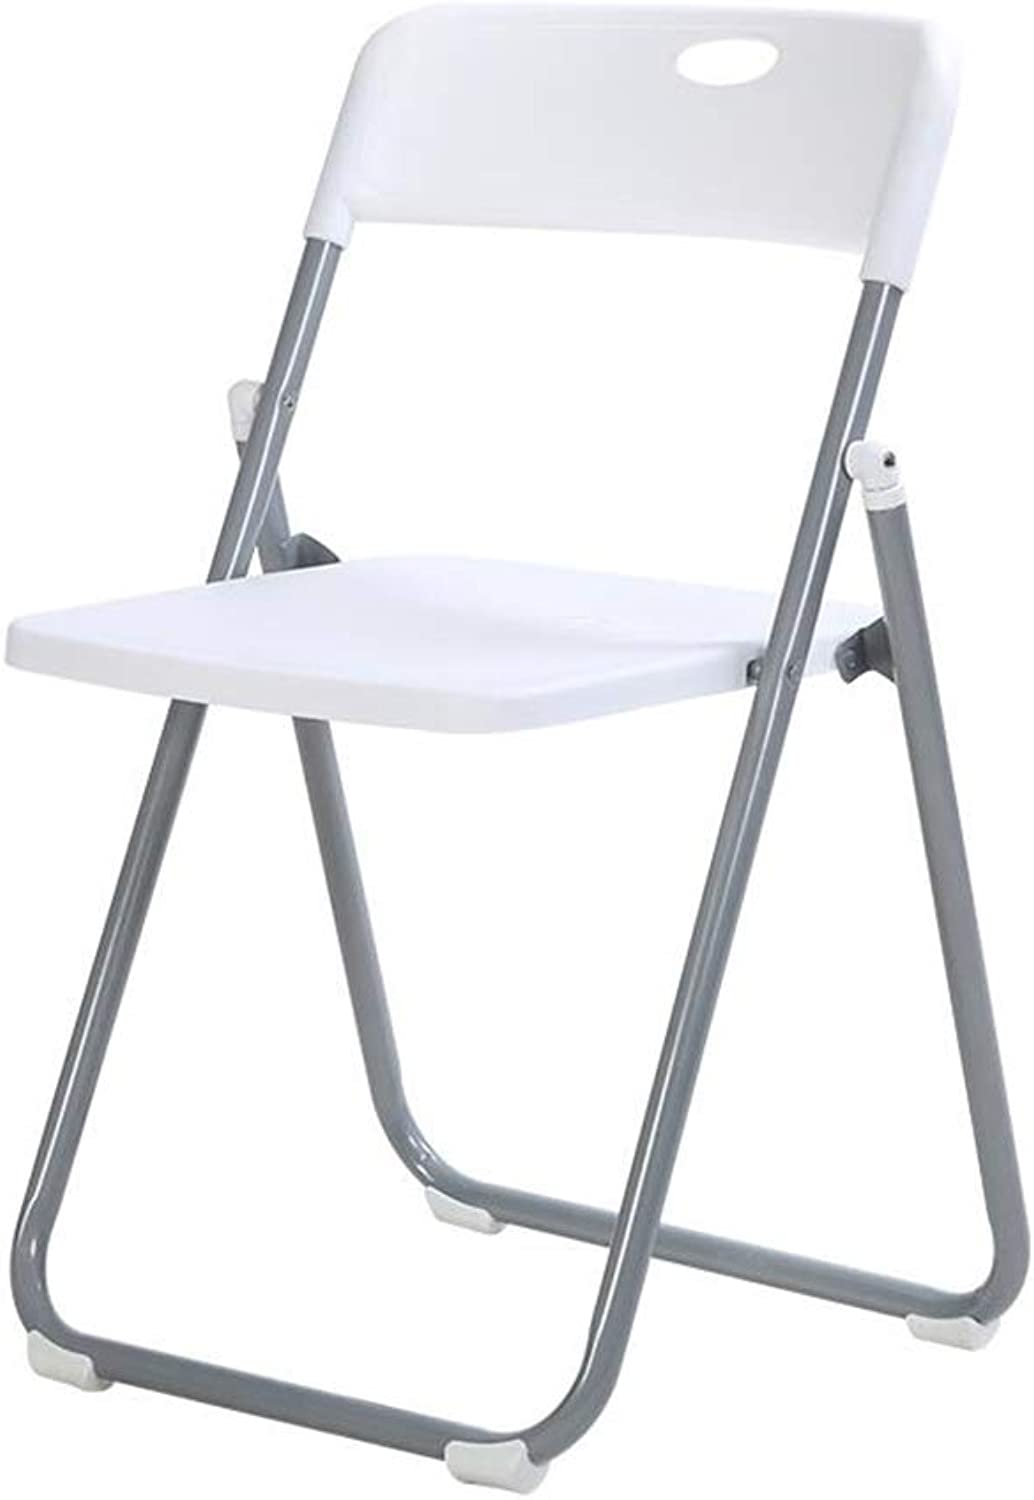 LBYMYB Folding Chair Visitor Meeting Advanced Plastic Comfortable Chair Chair (color   White)